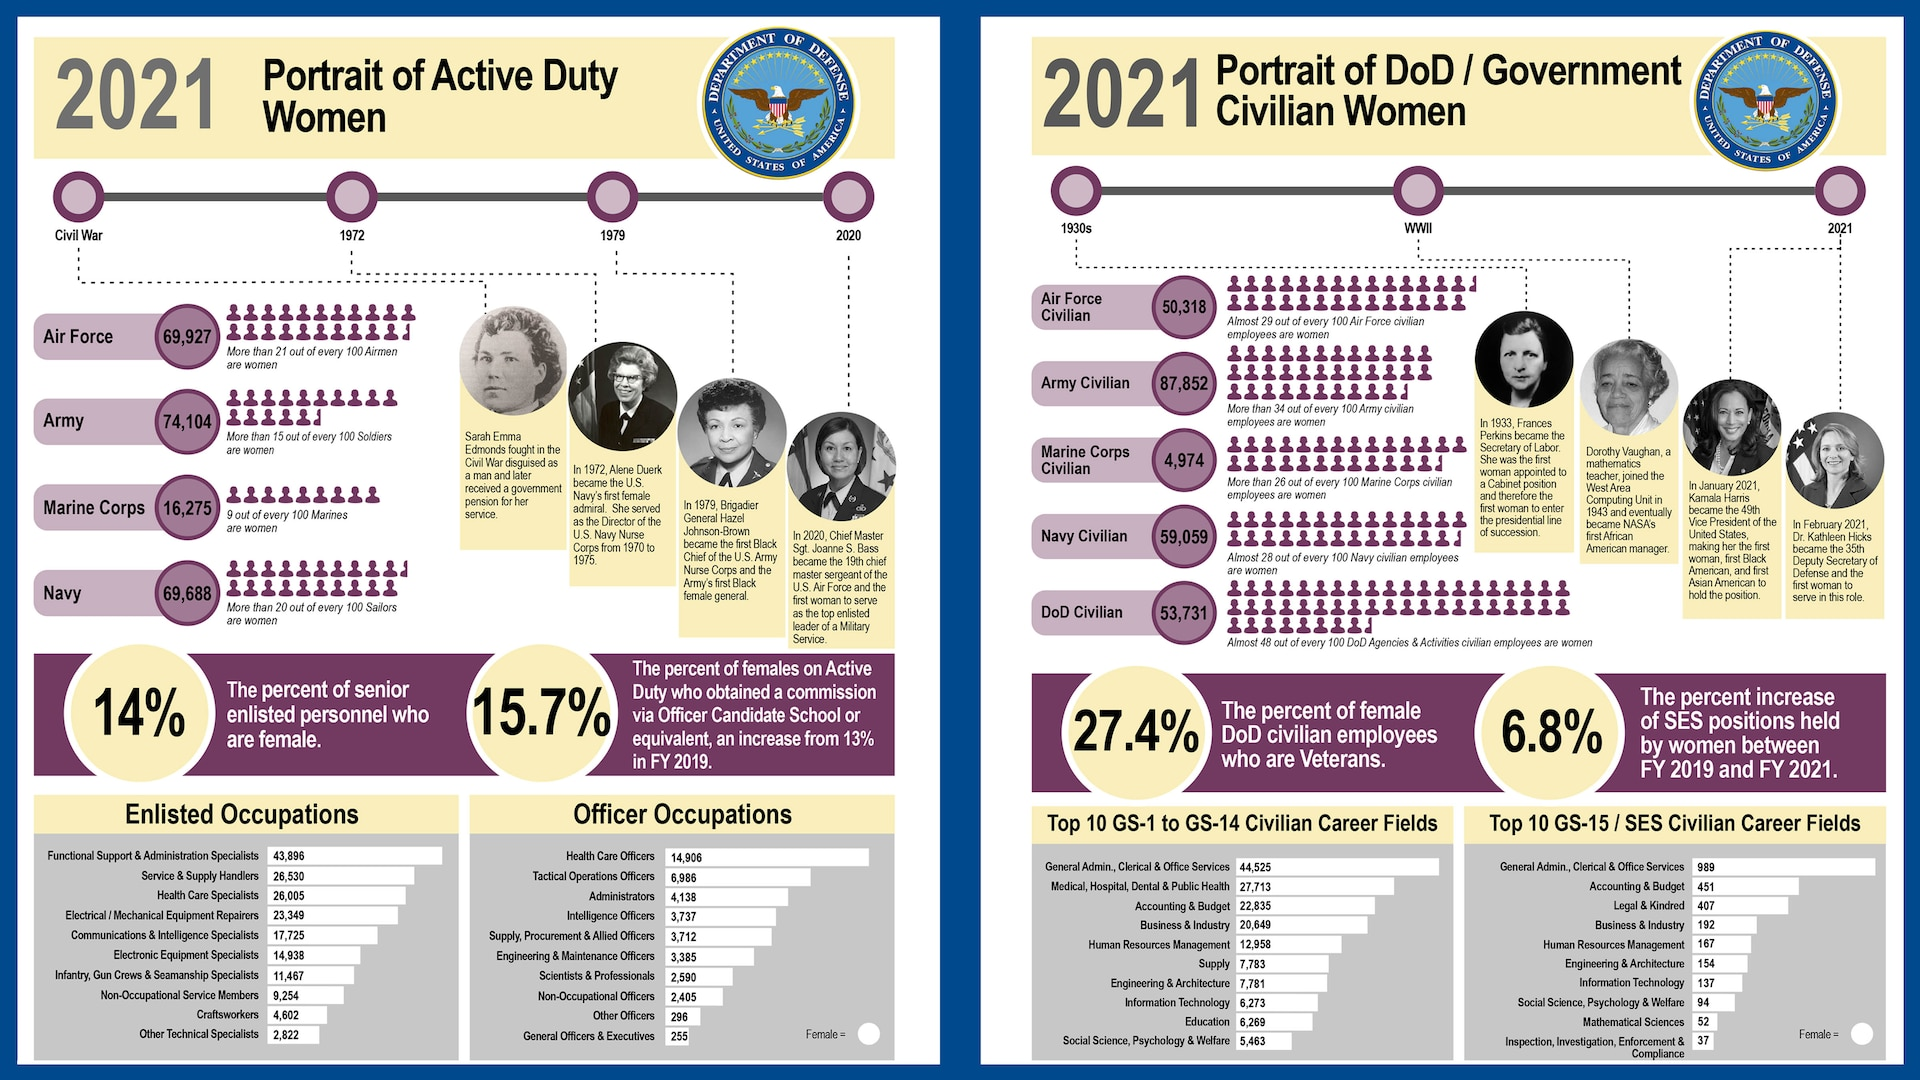 Graph displaying women's employment statistics within the military and federal service